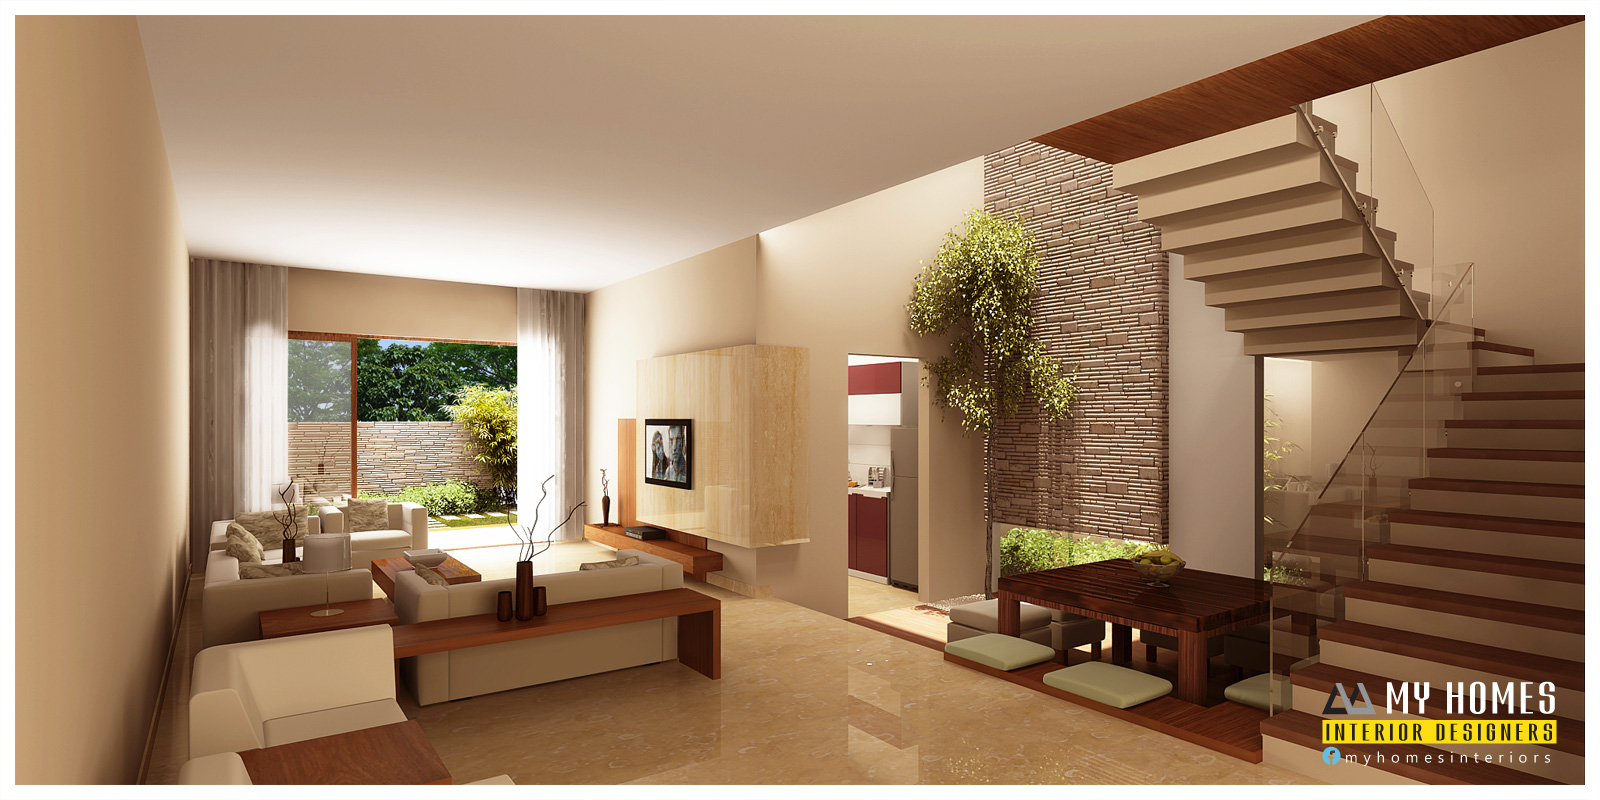 Kerala interior design ideas from designing company thrissur for House interior ideas